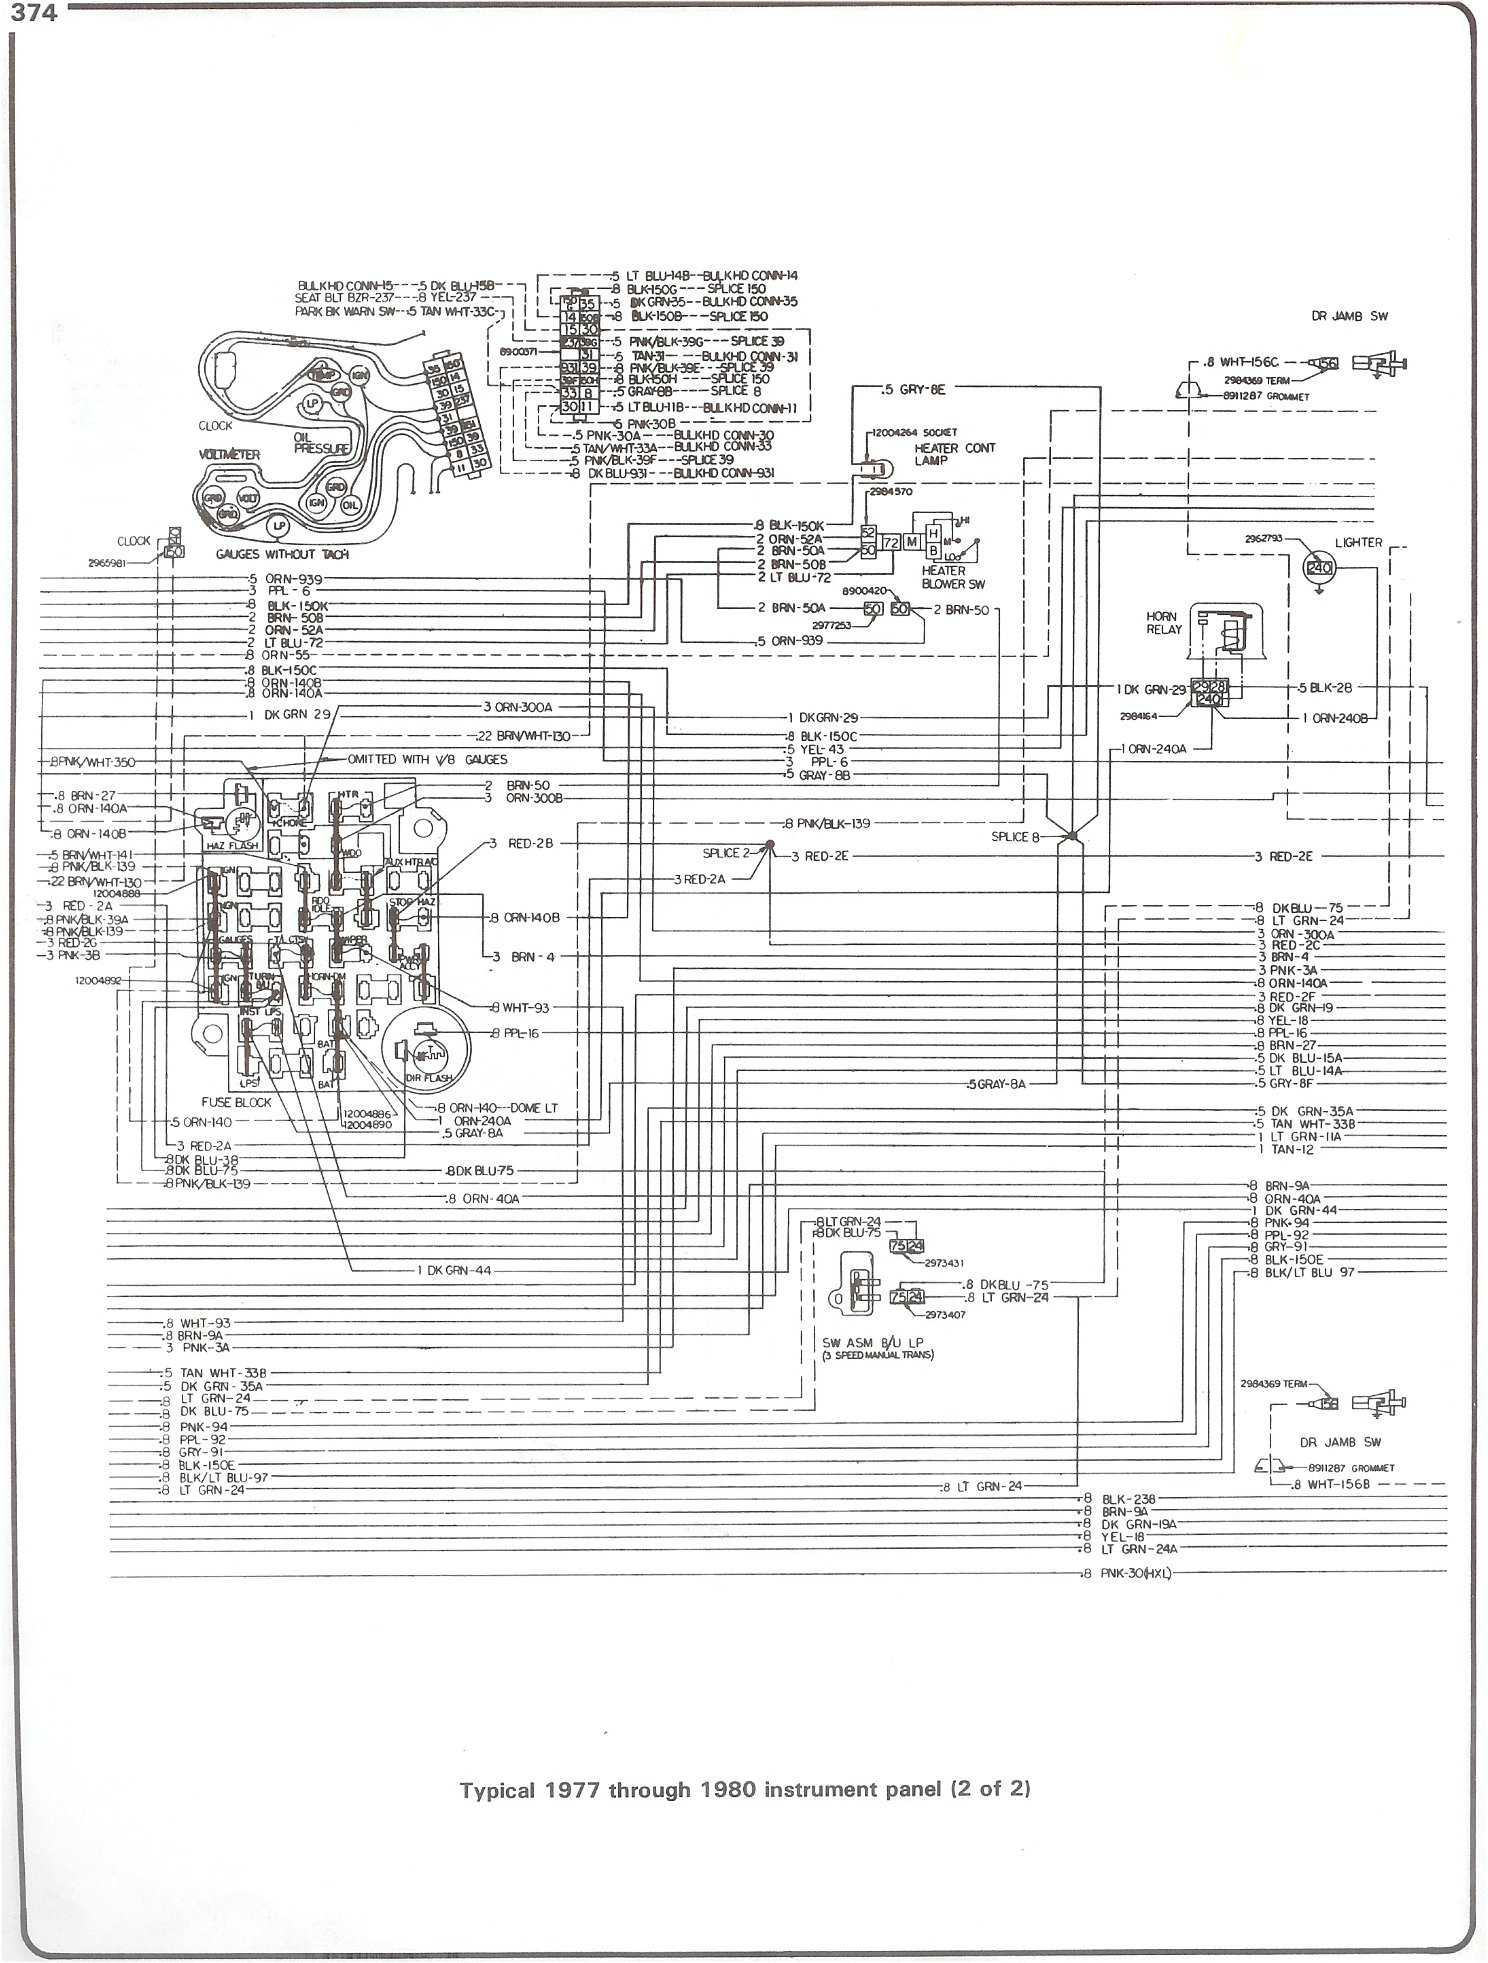 77 80_instrument_pg2 1978 chevy truck wiring diagram chevy malibu ignition wiring 1978 chevy truck fuse box diagram at webbmarketing.co